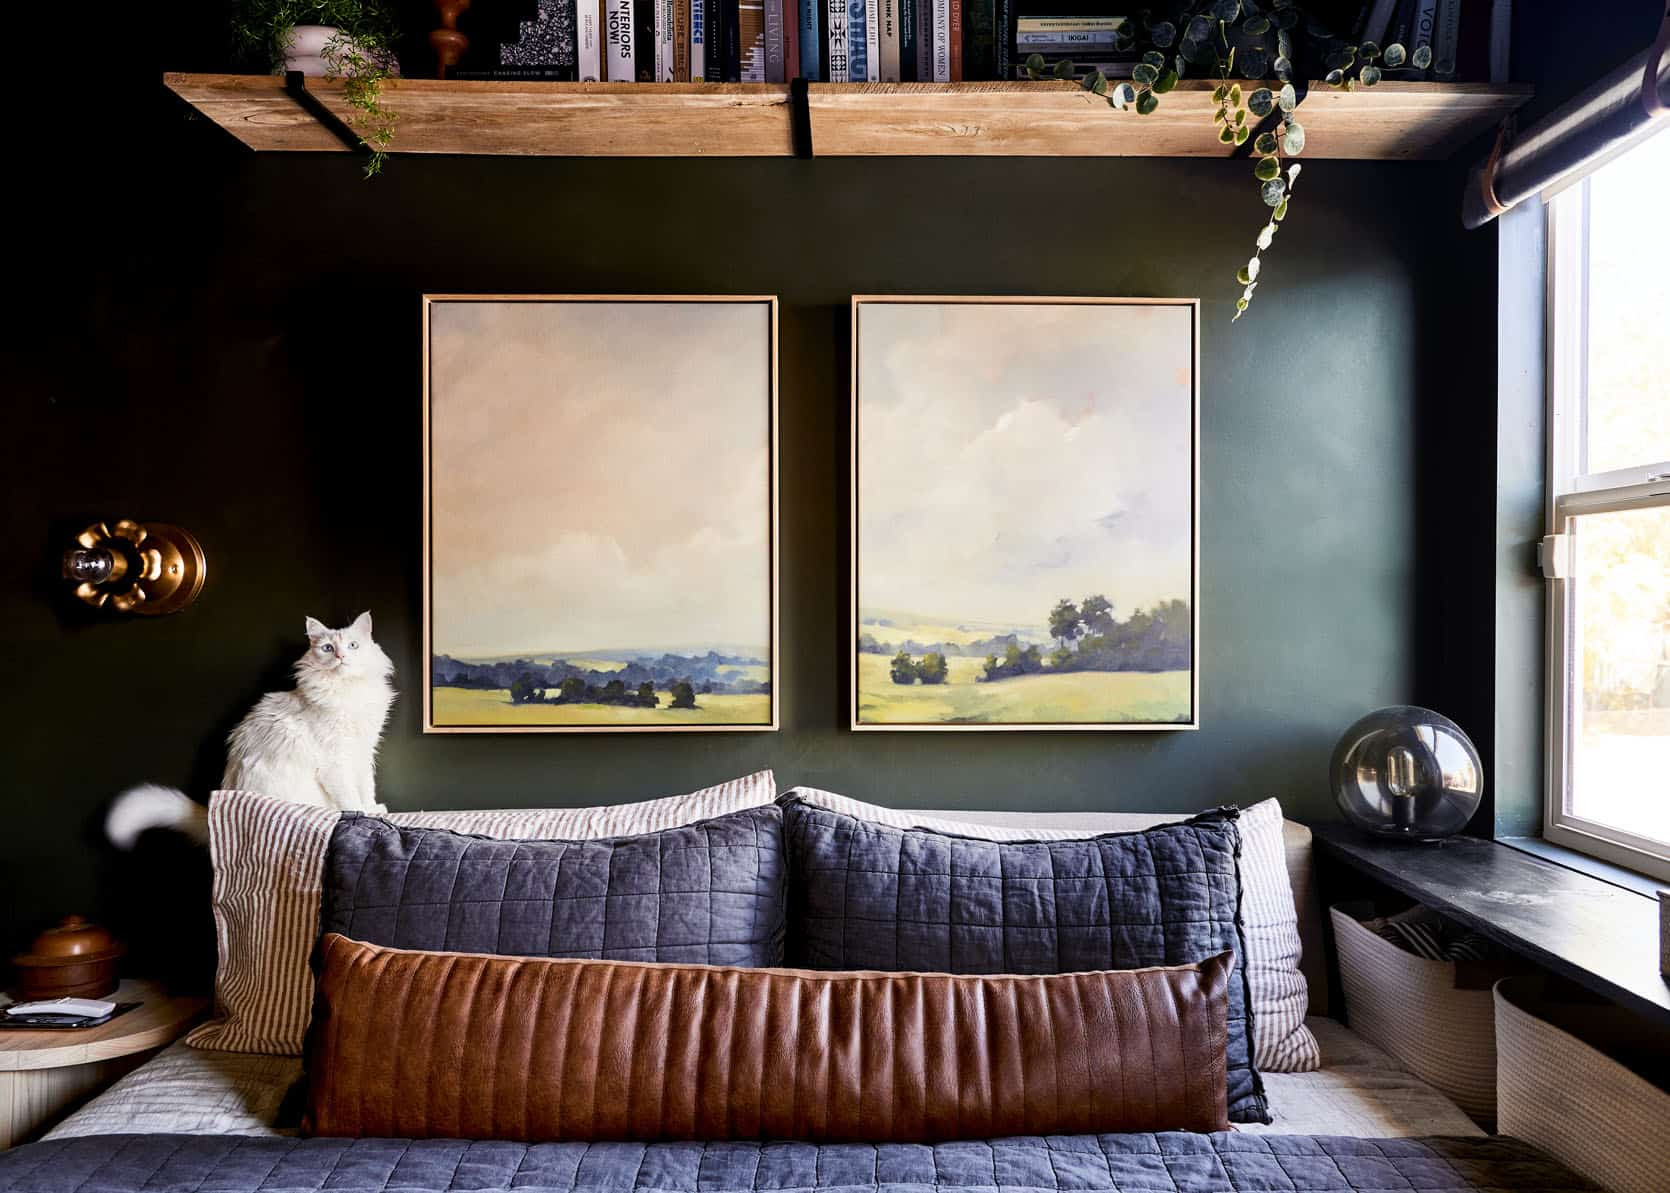 Our New Favorite Large-Scale Art (Why It Works & 8 of My Picks)